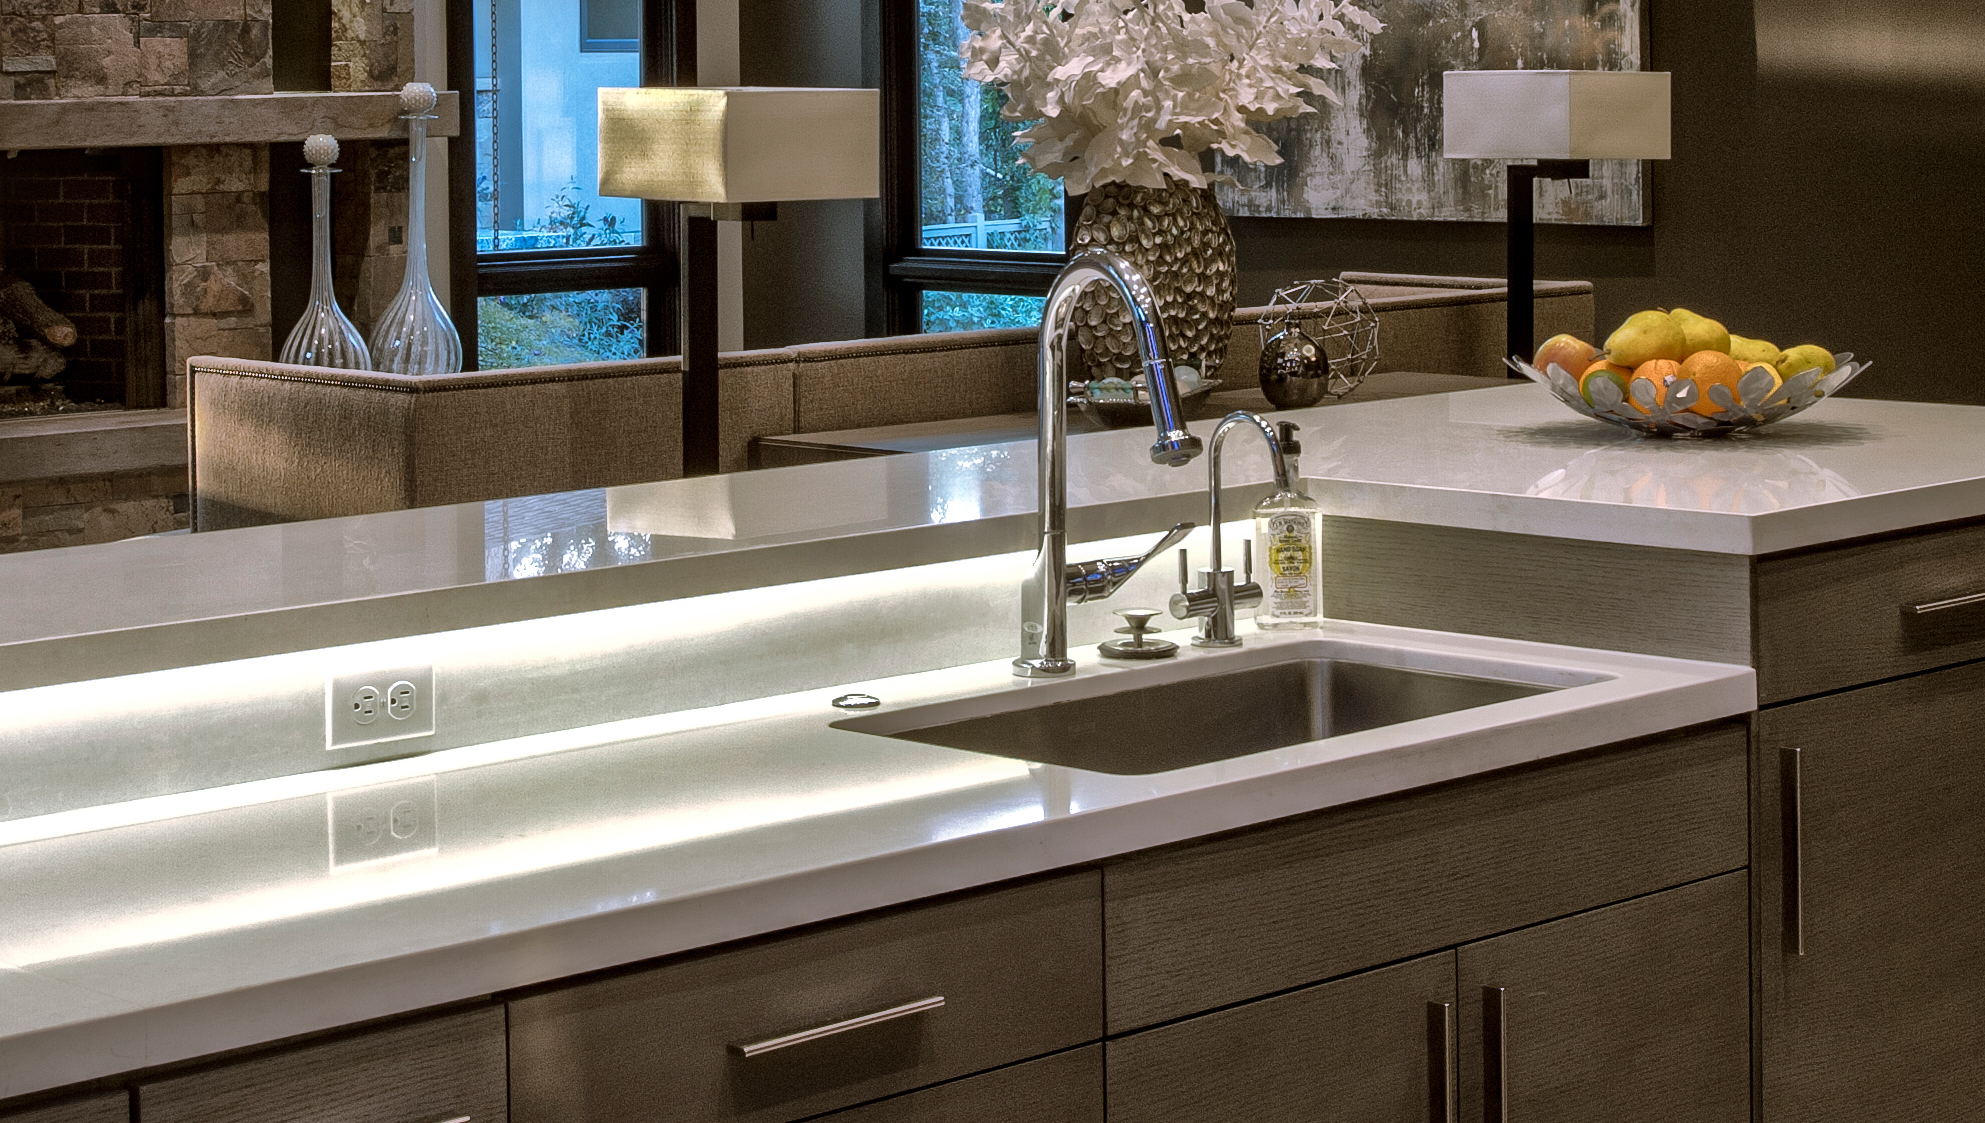 Big Fish LED lights are hidden in this countertop to provide a stunning effect. & LED Accent Lighting | Big Fish Home Automation azcodes.com